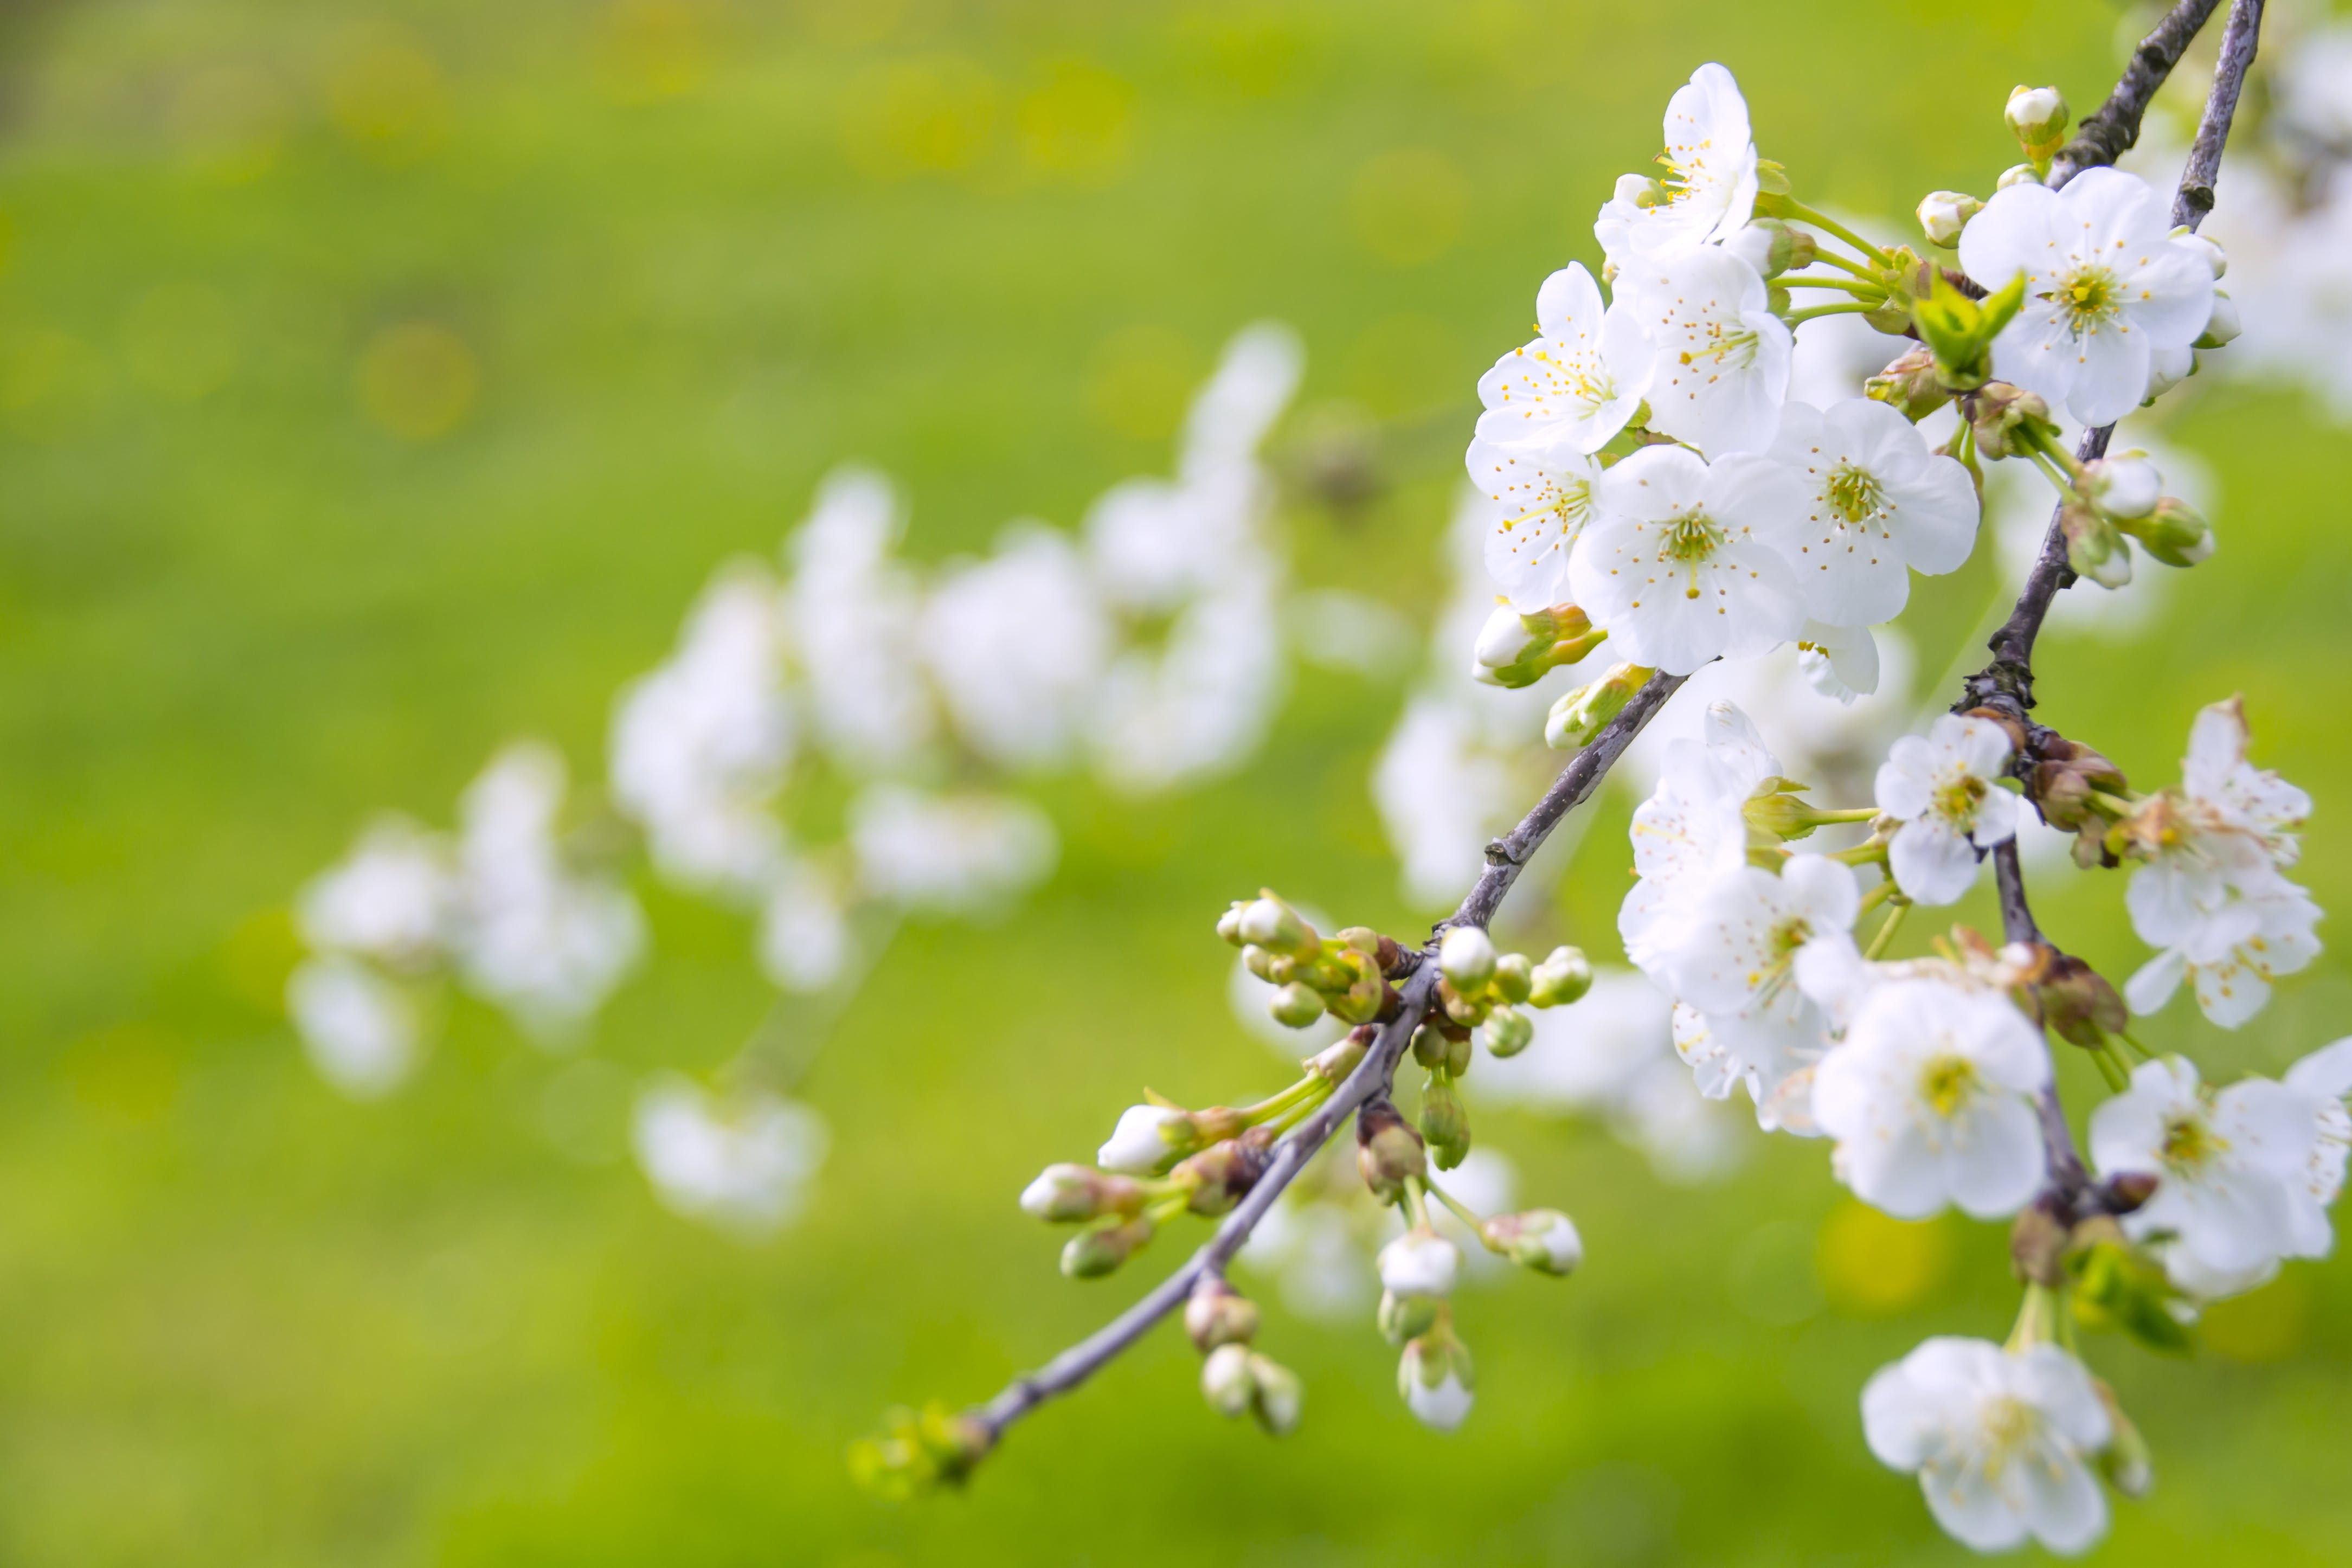 Free stock photo of angelic beauty of the tree of life, angelic blooming cherry, background, blooming flowers